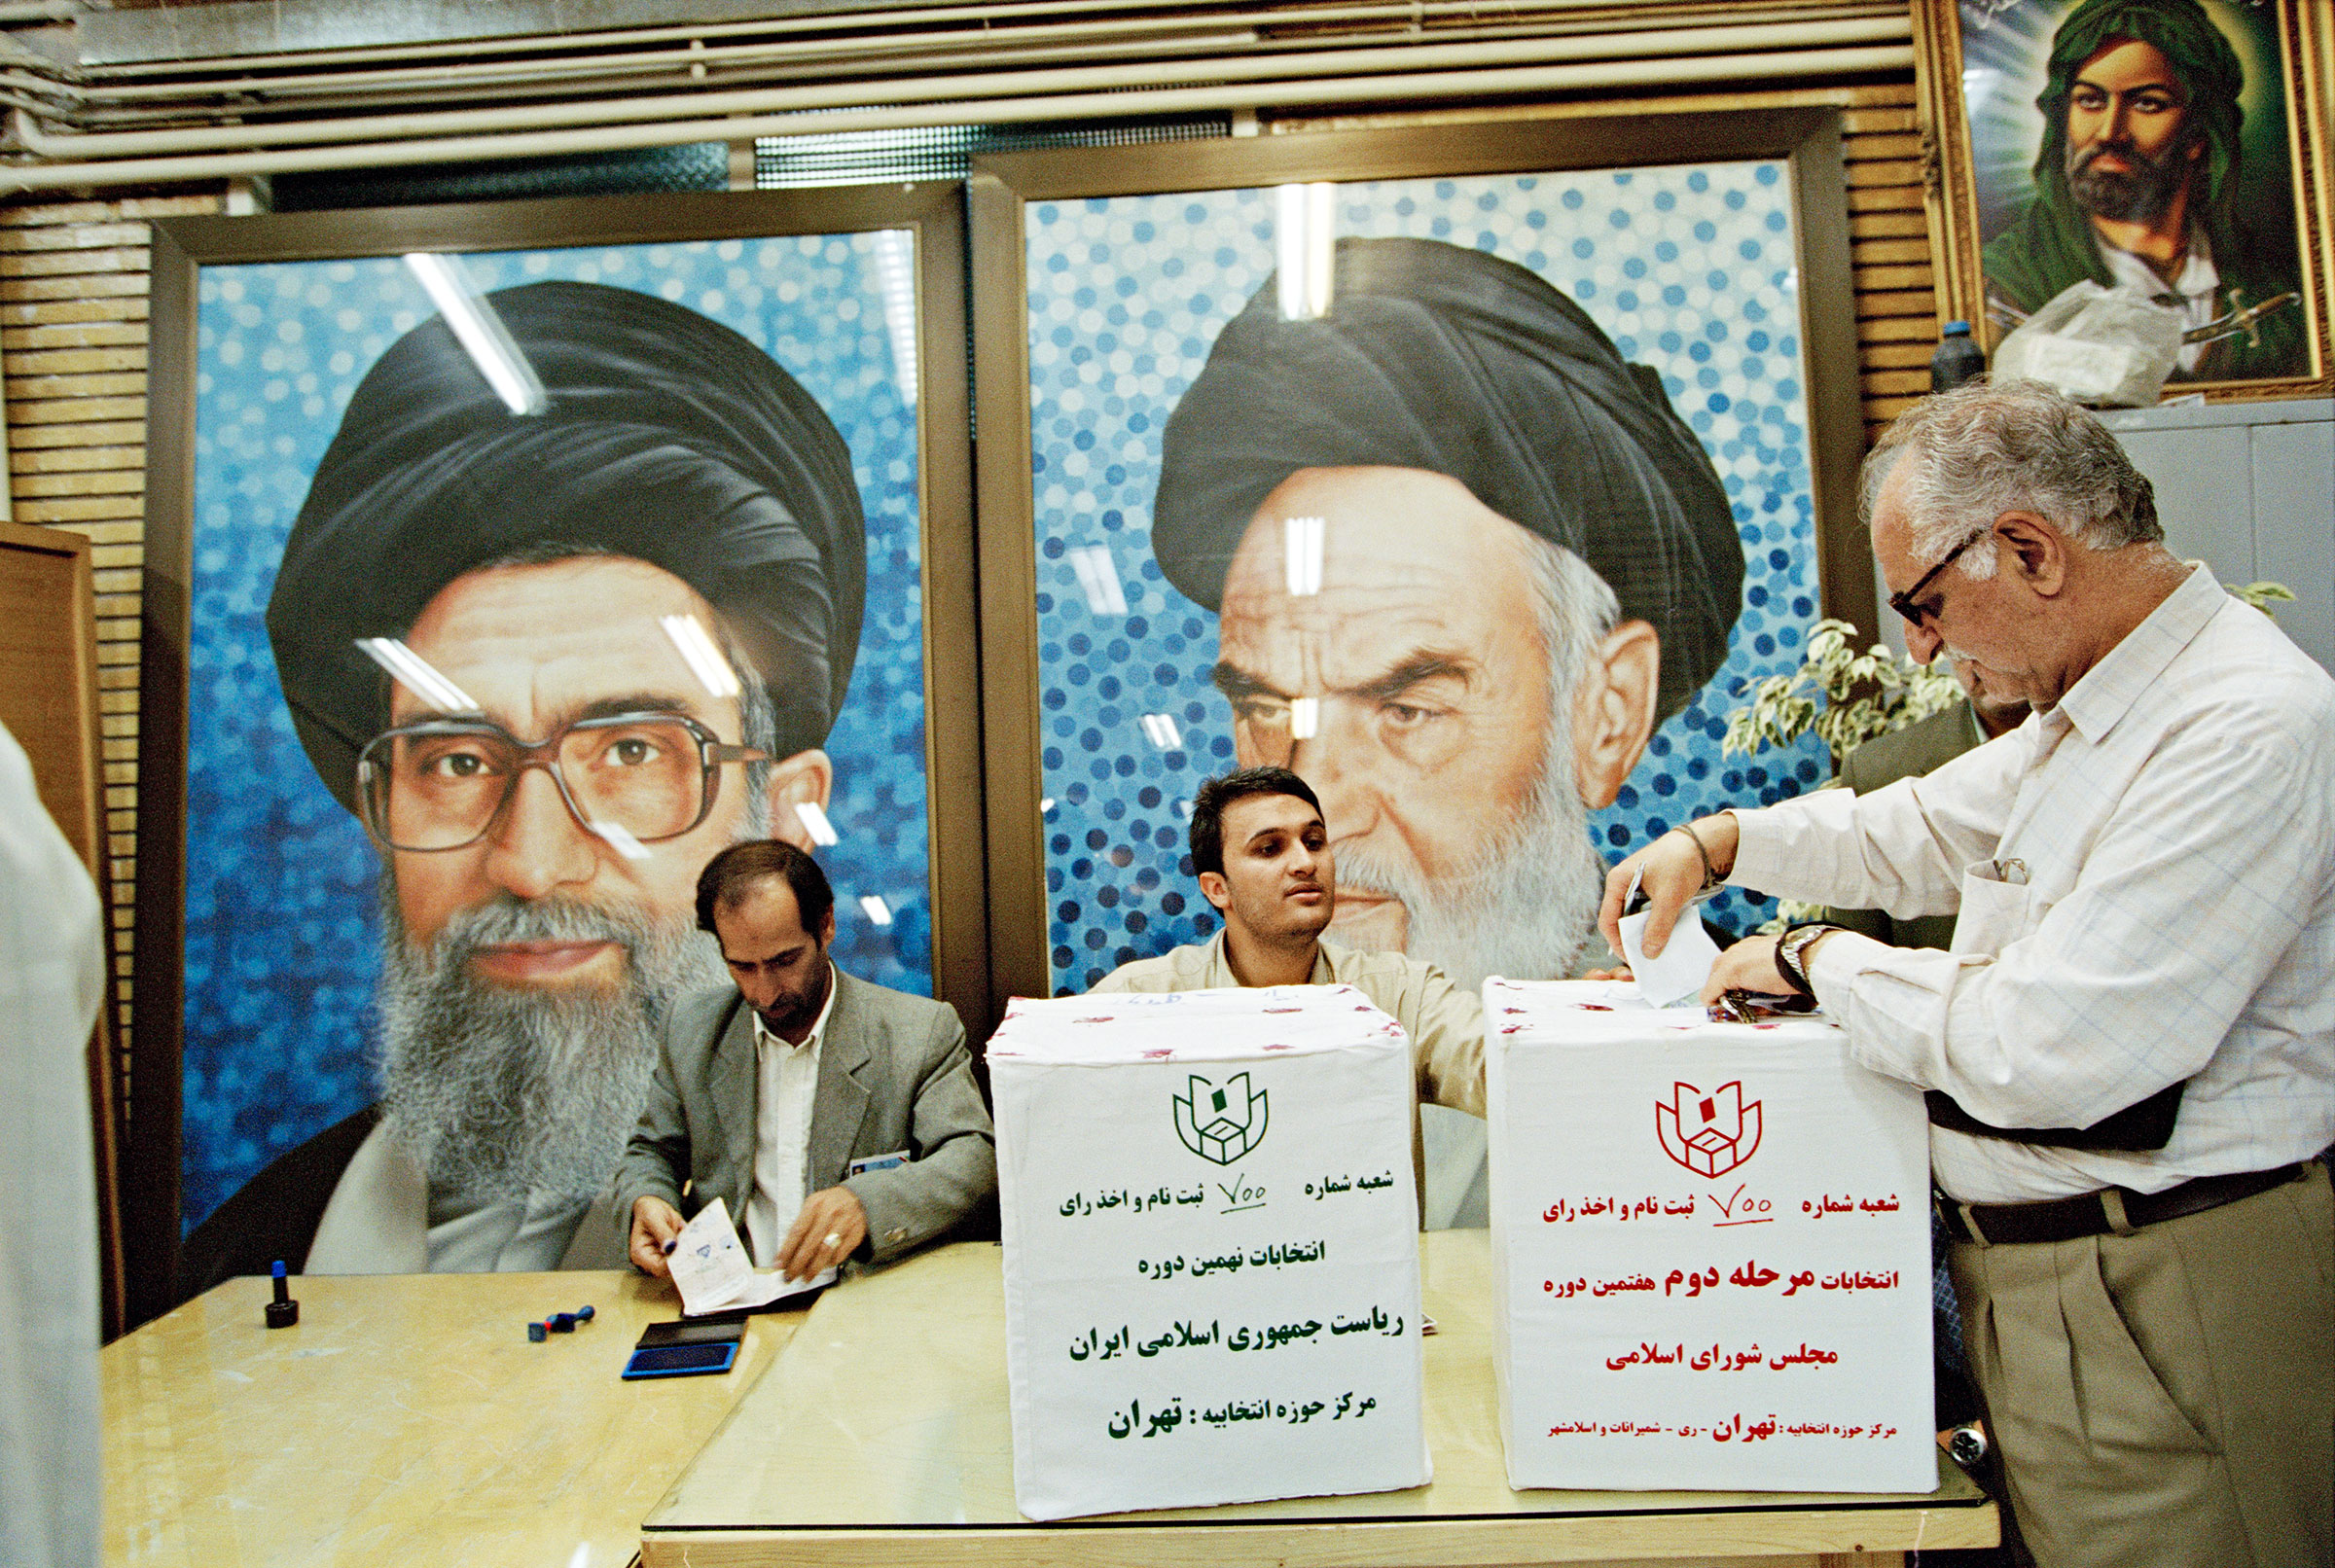 Portraits of Khamenei and his mentor and predecessor, Khomeini (right), at a Tehran polling place in June